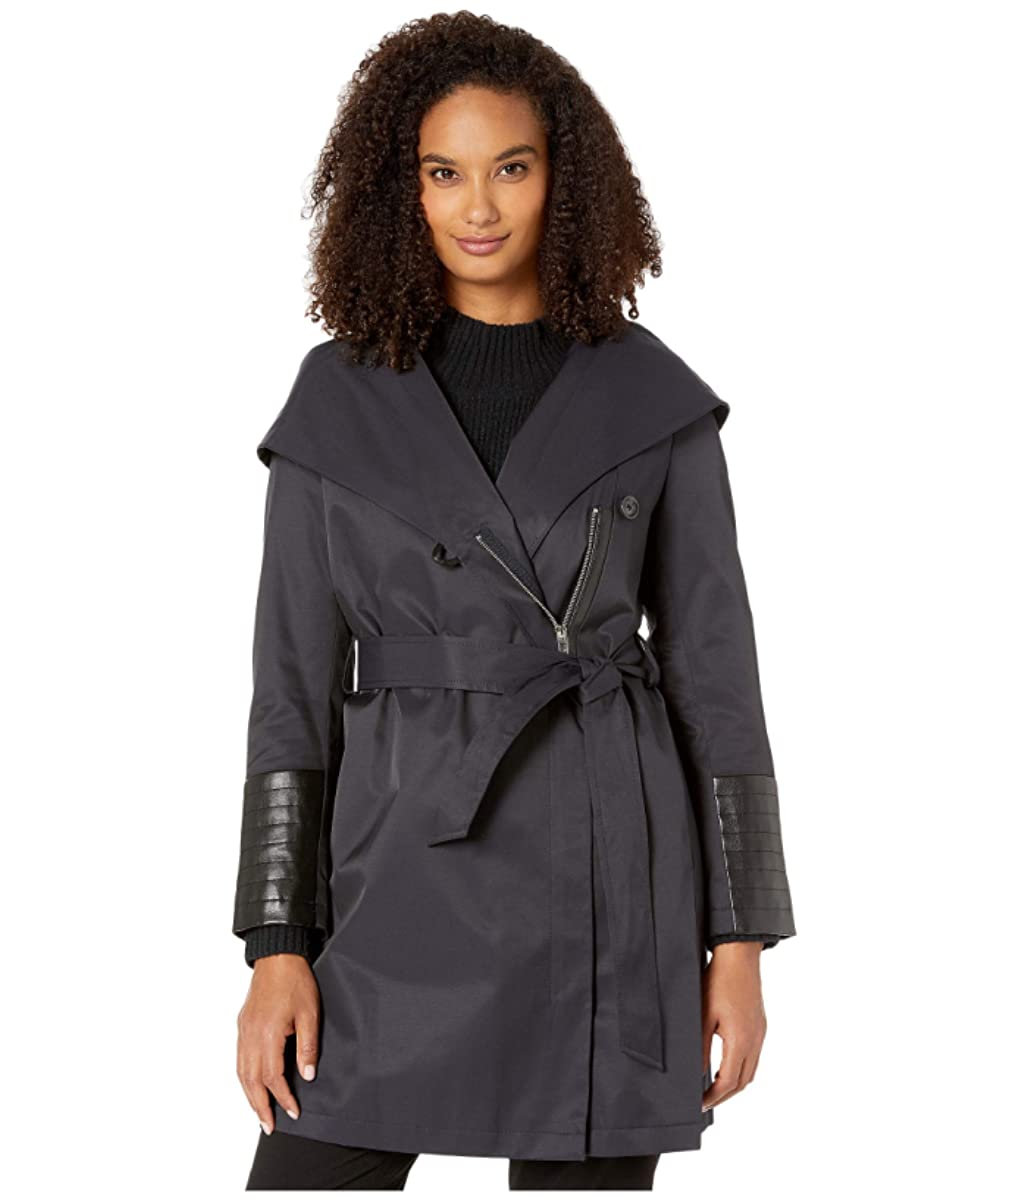 Via Spiga Oversized Hooded Shawl Collar Woven Lightweight Raincoat with Faux Leather Detail (92092669)